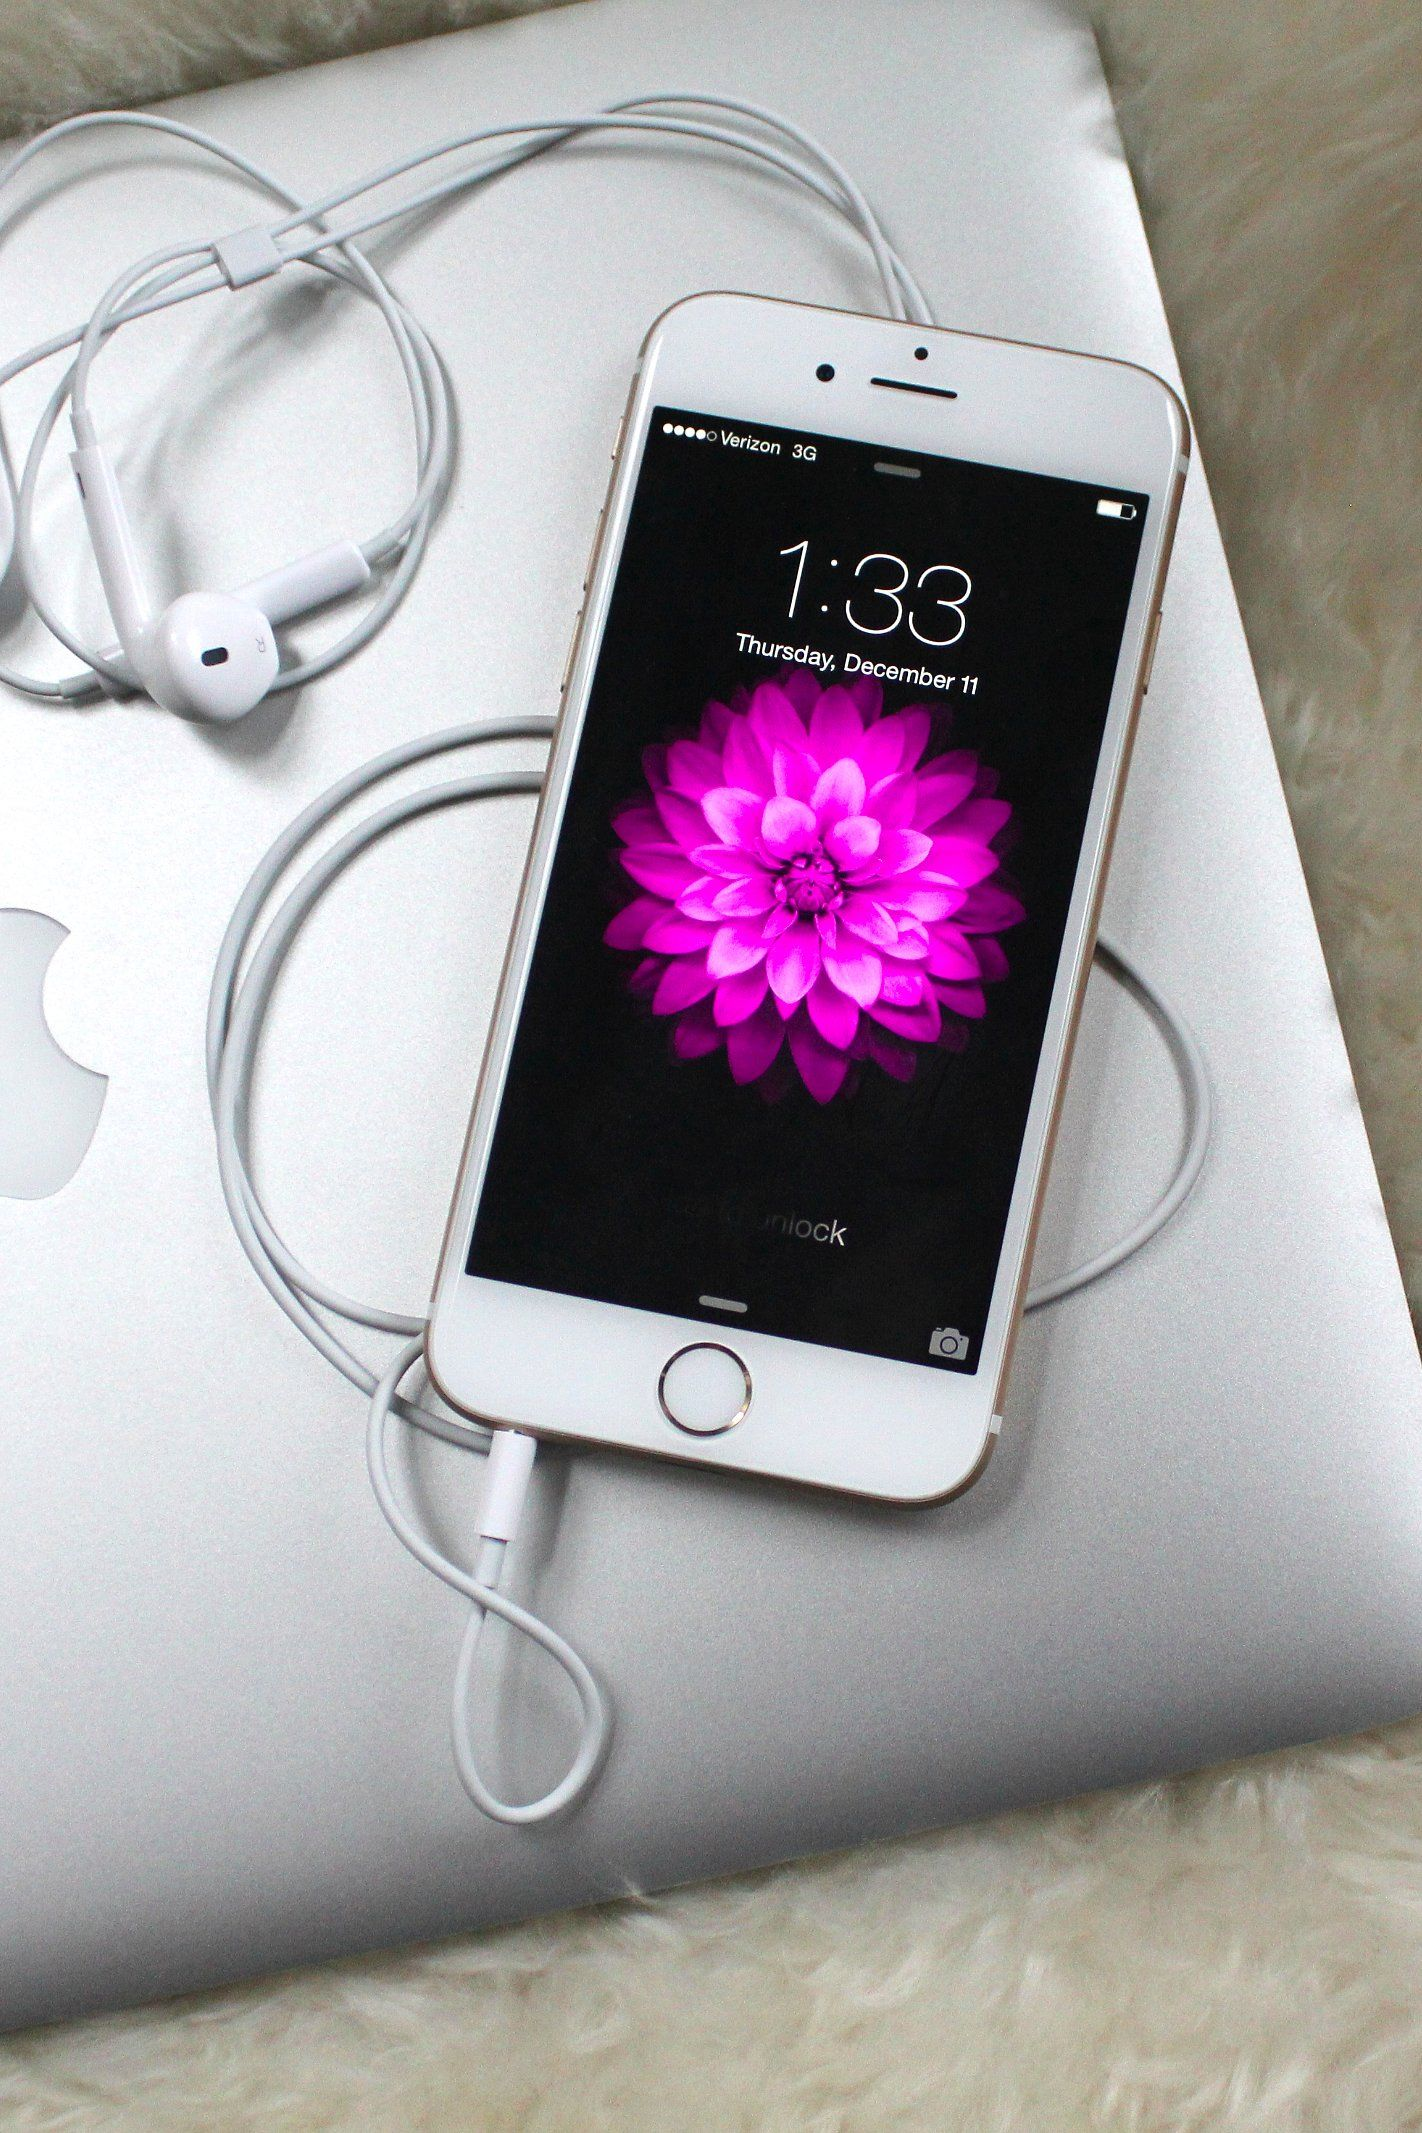 7 hidden iphone features apple didnt tell you about